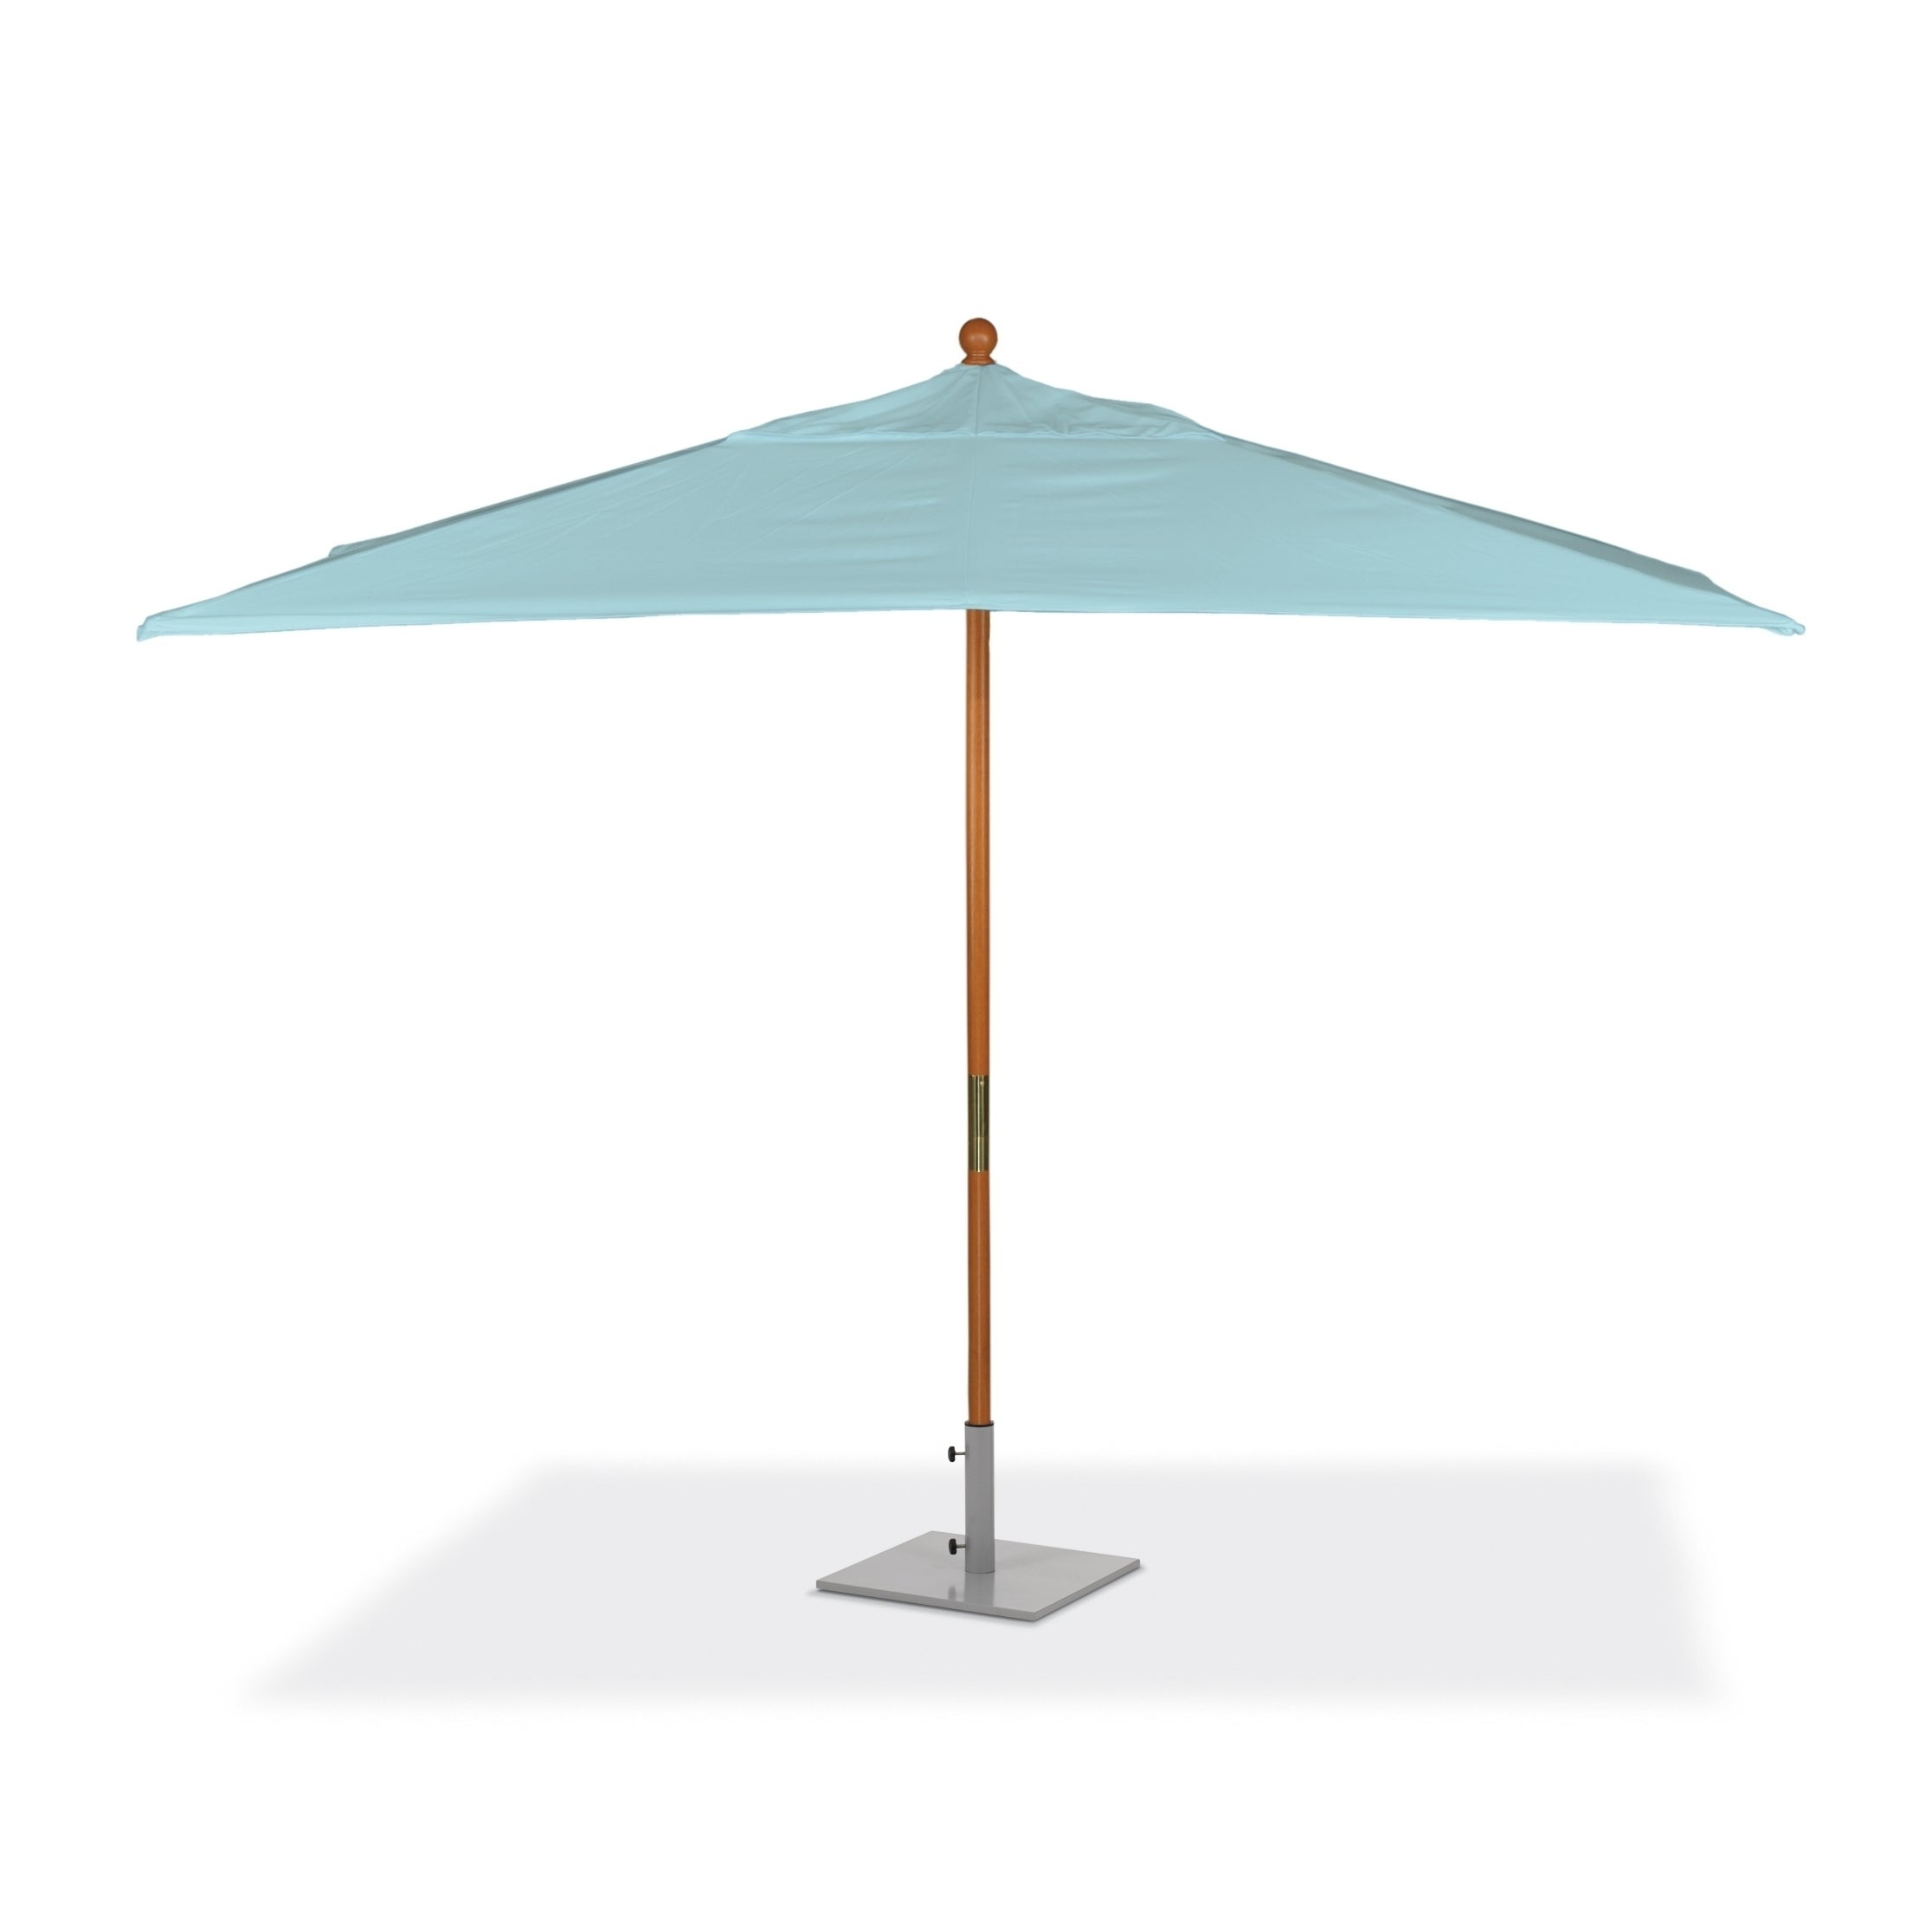 Most Current Solid Rectangular Market Umbrellas Intended For Oxford Garden 10 Feet Rectangular Mineral Blue Sunbrella Fabric Shade  Market Umbrella With Solid Tropical Hardwood Frame (View 8 of 20)